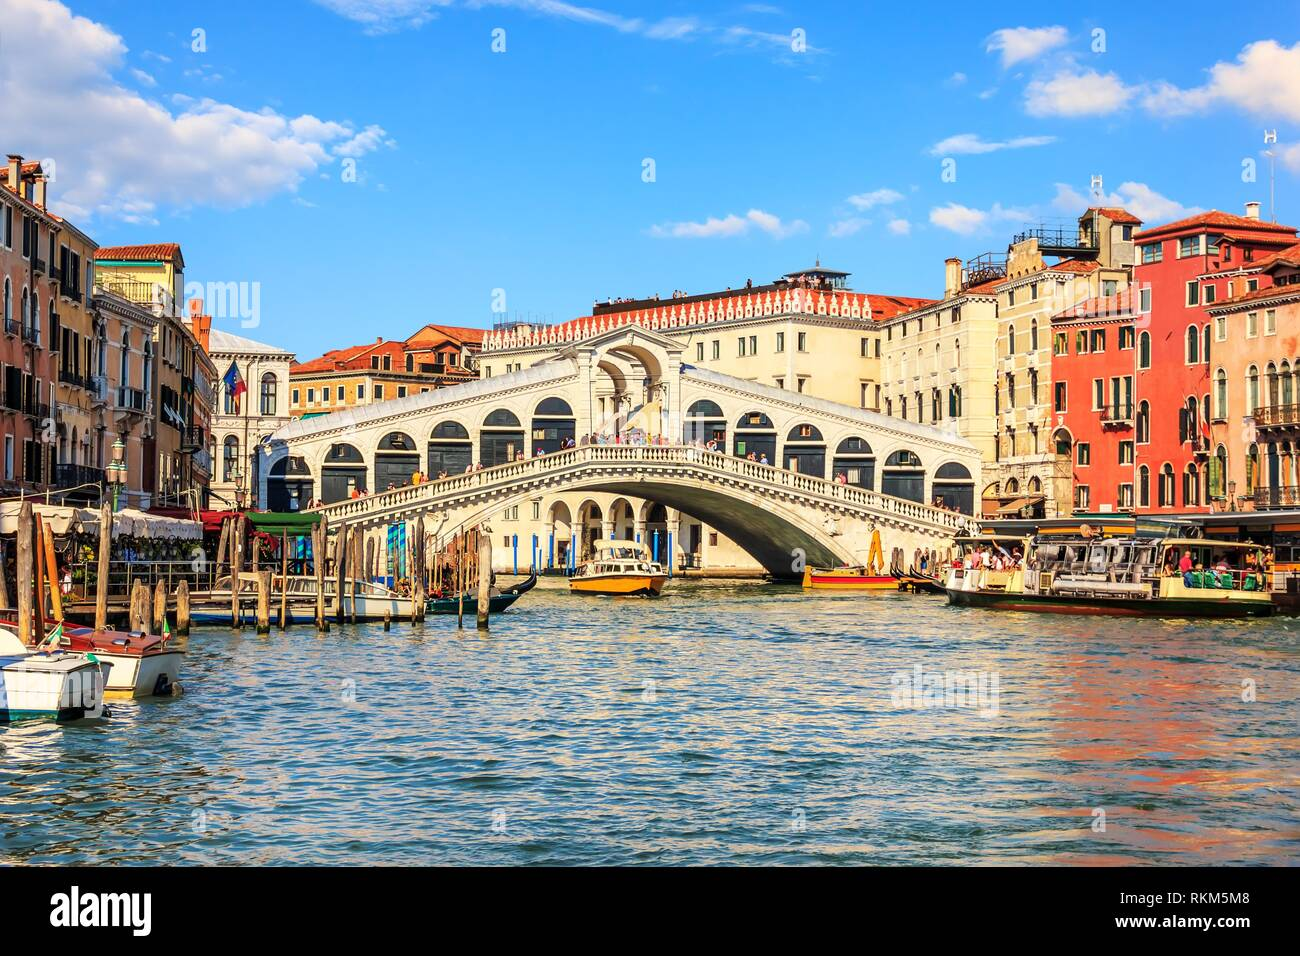 The Rialto Bridge, one of the most visited sights of Venice, Italy. - Stock Image